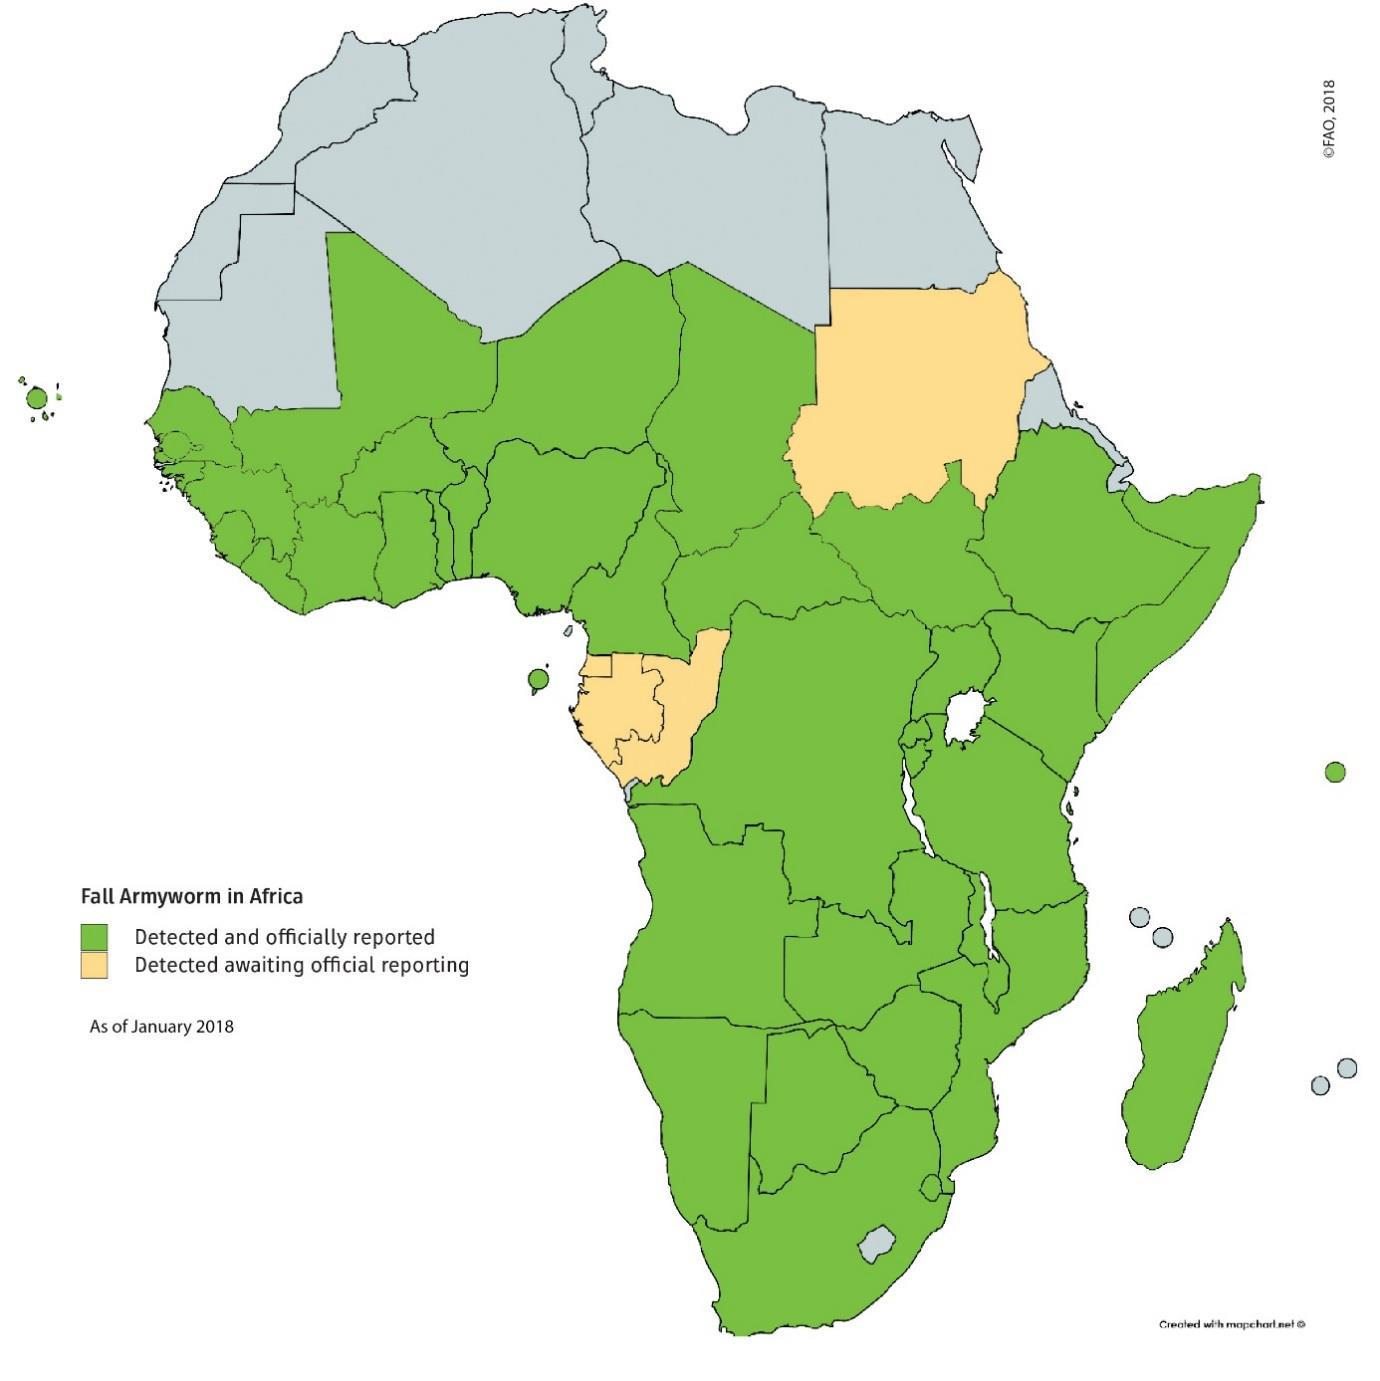 Map of areas affected by Fall Armyworm (as of January 2018)